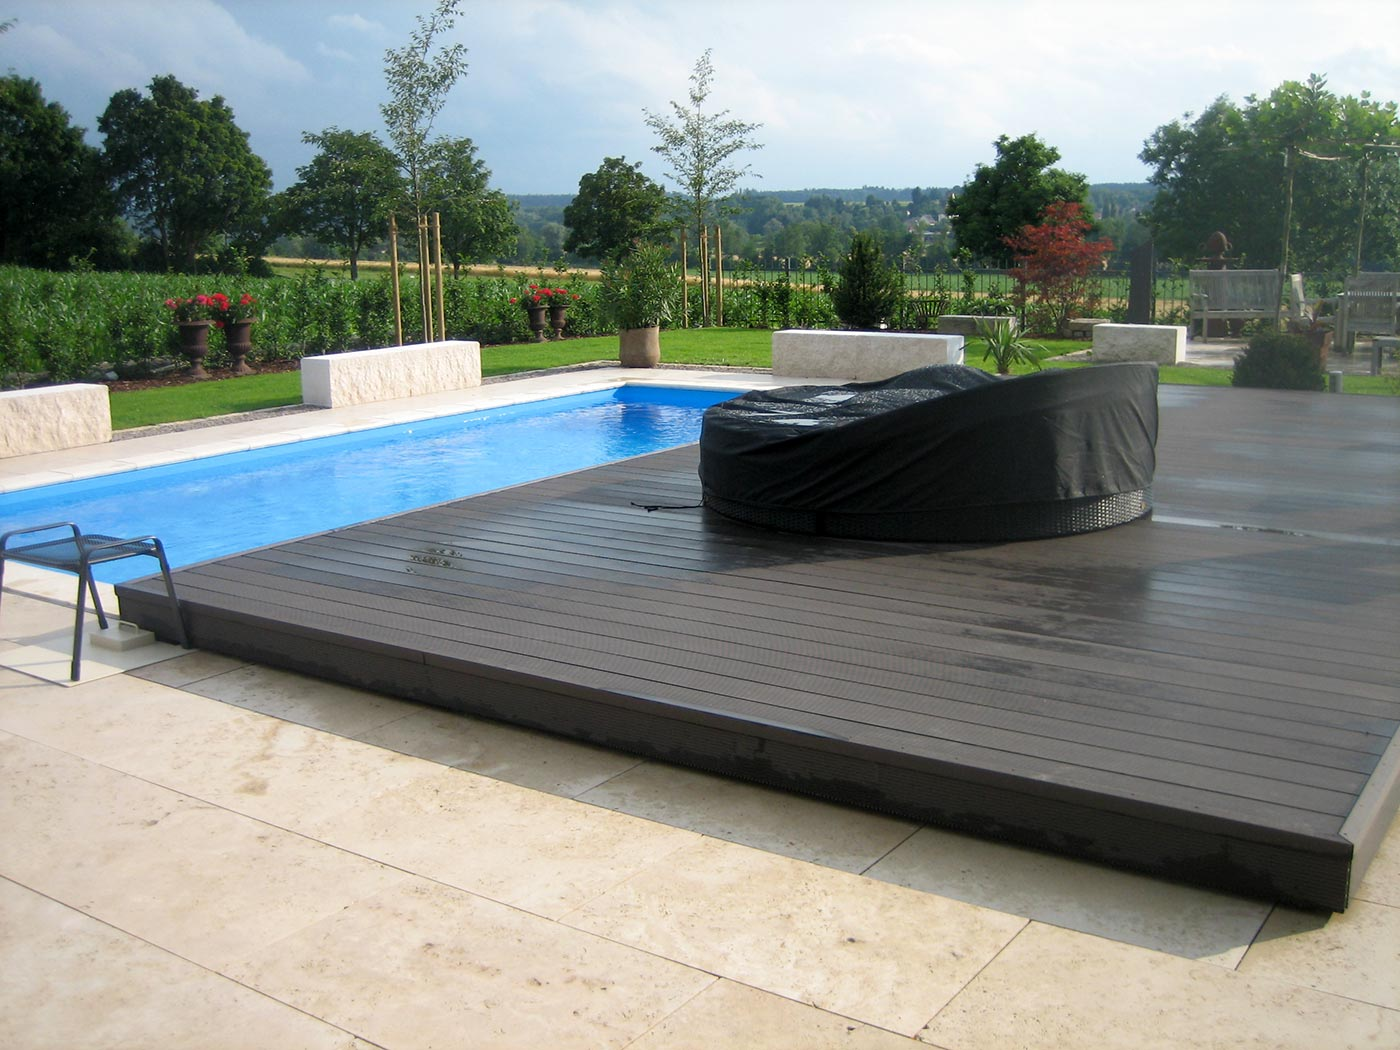 pooldecks das fahrbare pooldeck als poolabdeckung f r ihre pool. Black Bedroom Furniture Sets. Home Design Ideas